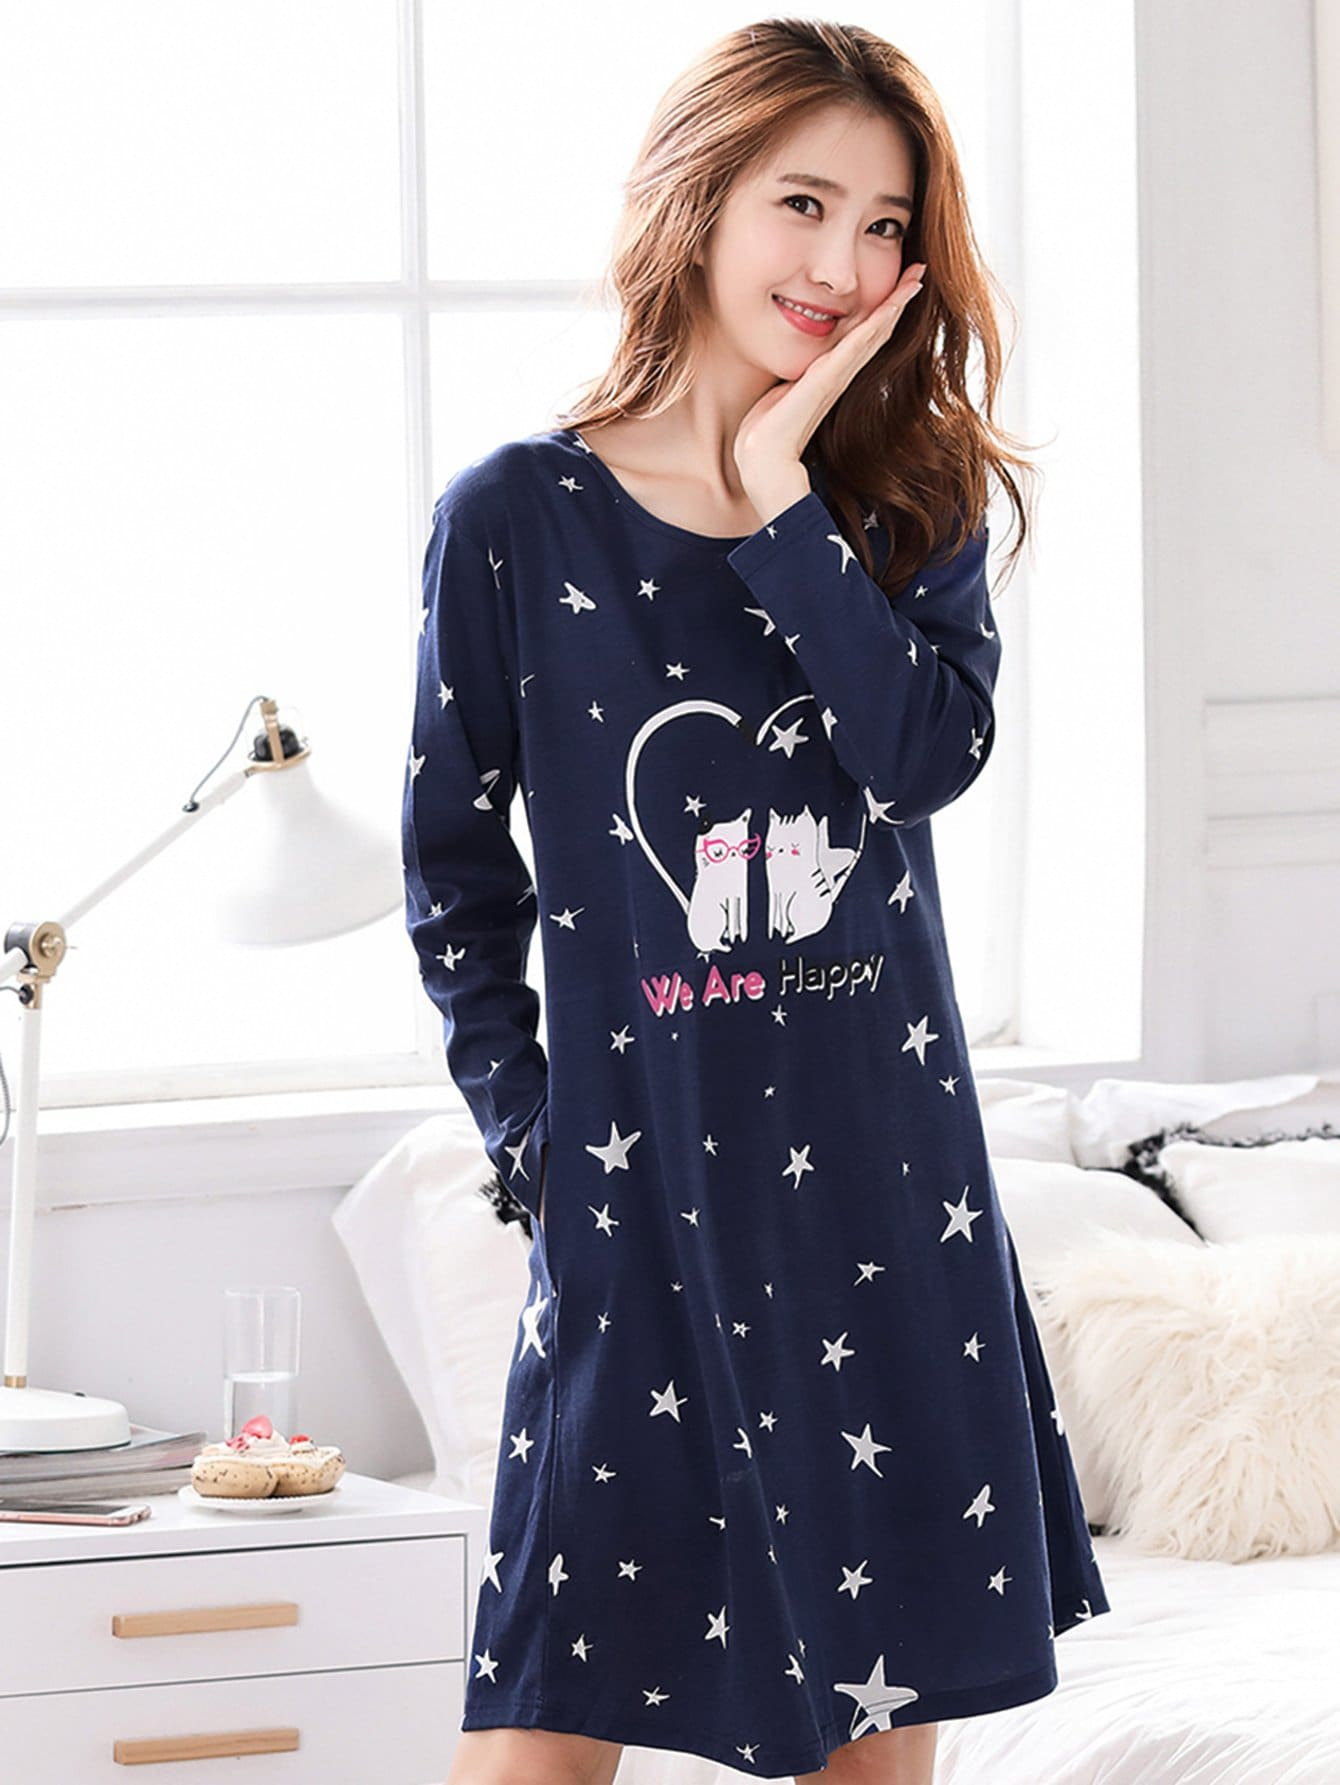 Cat & Star Print Night Dress